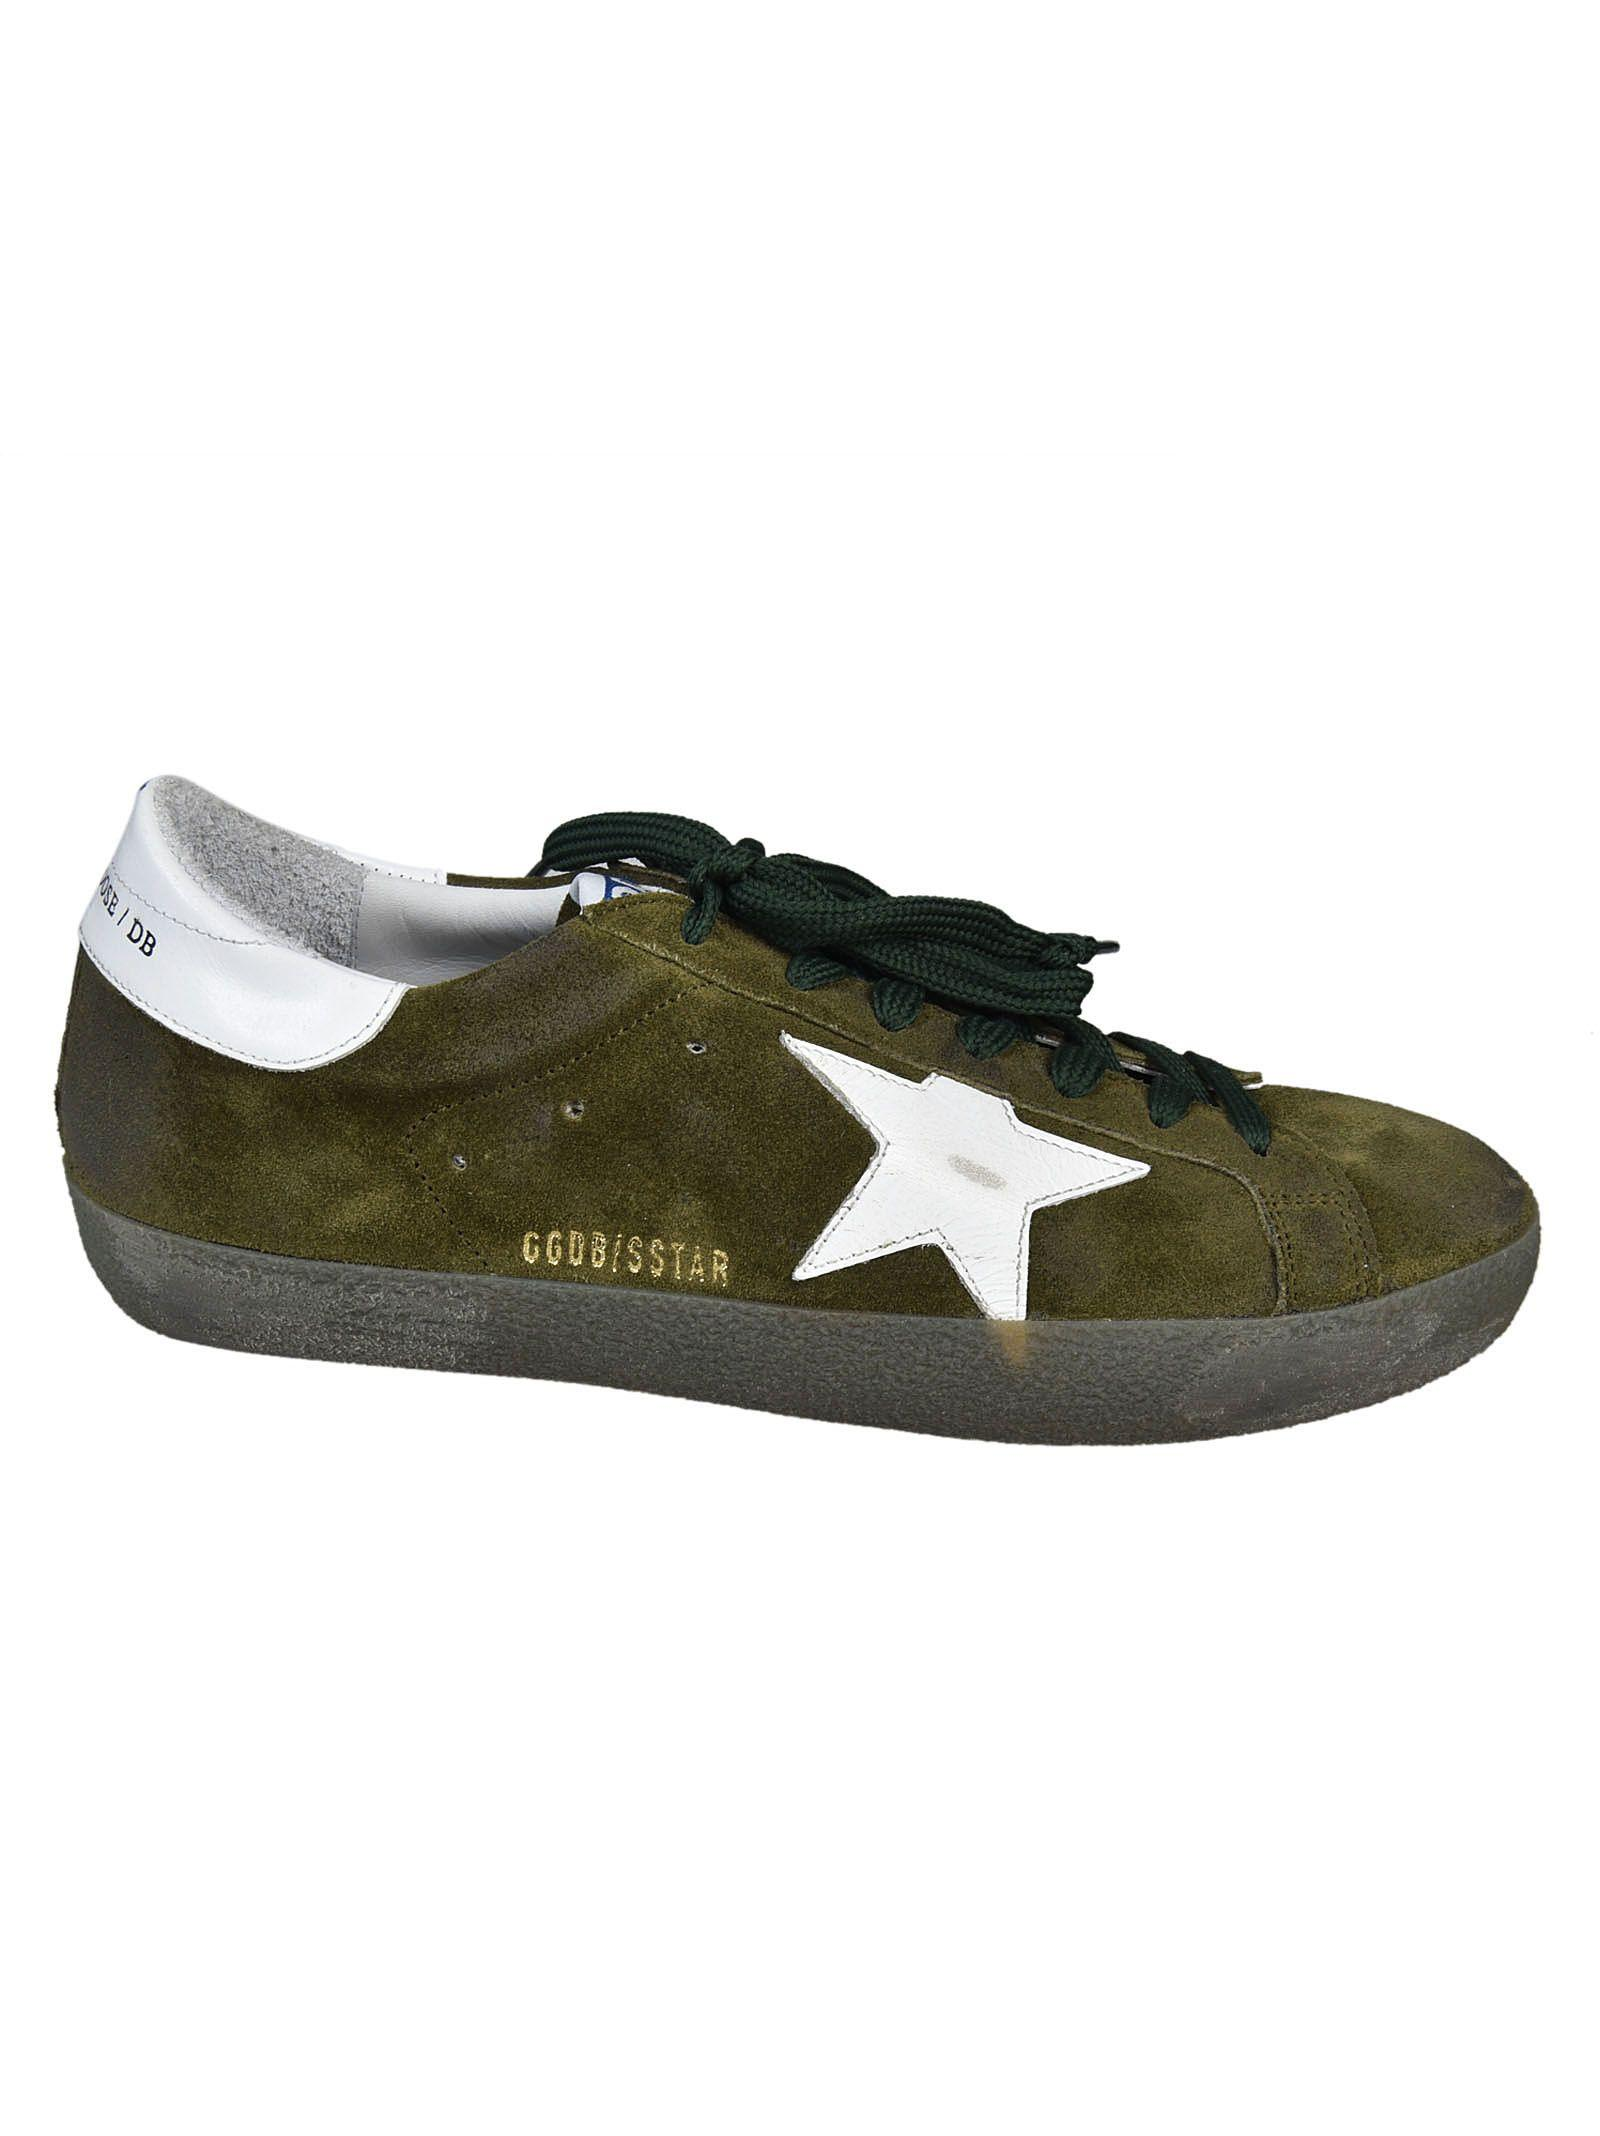 Golden Goose Superstar Sneakers In Olive-white